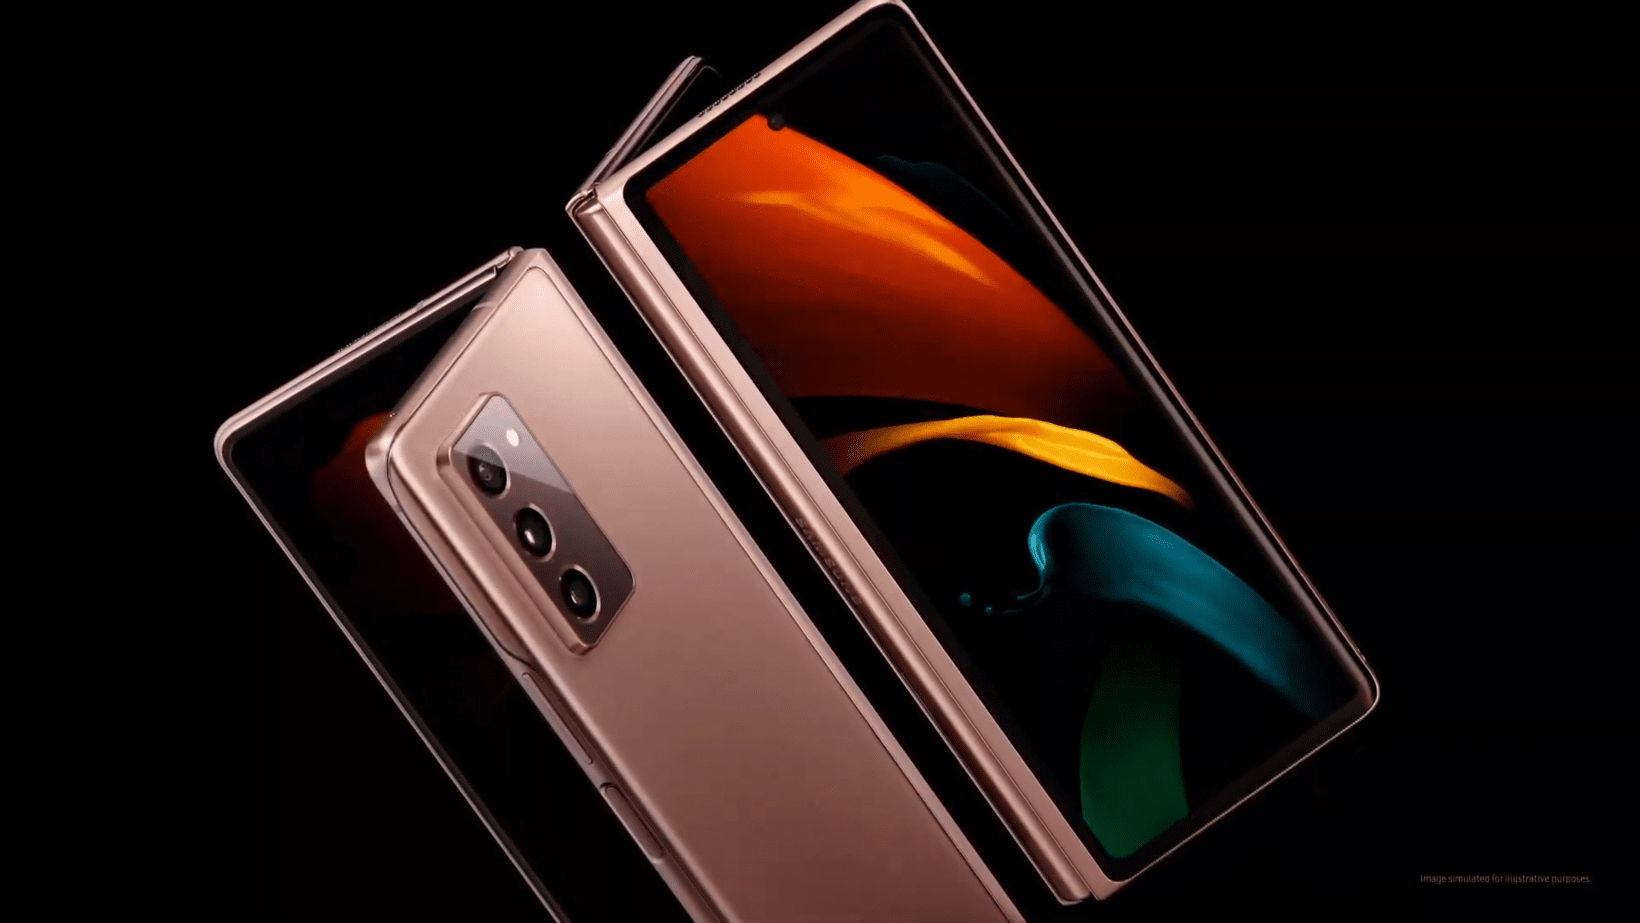 Samsung's Galaxy Z Fold 2 tackles the original's biggest problems